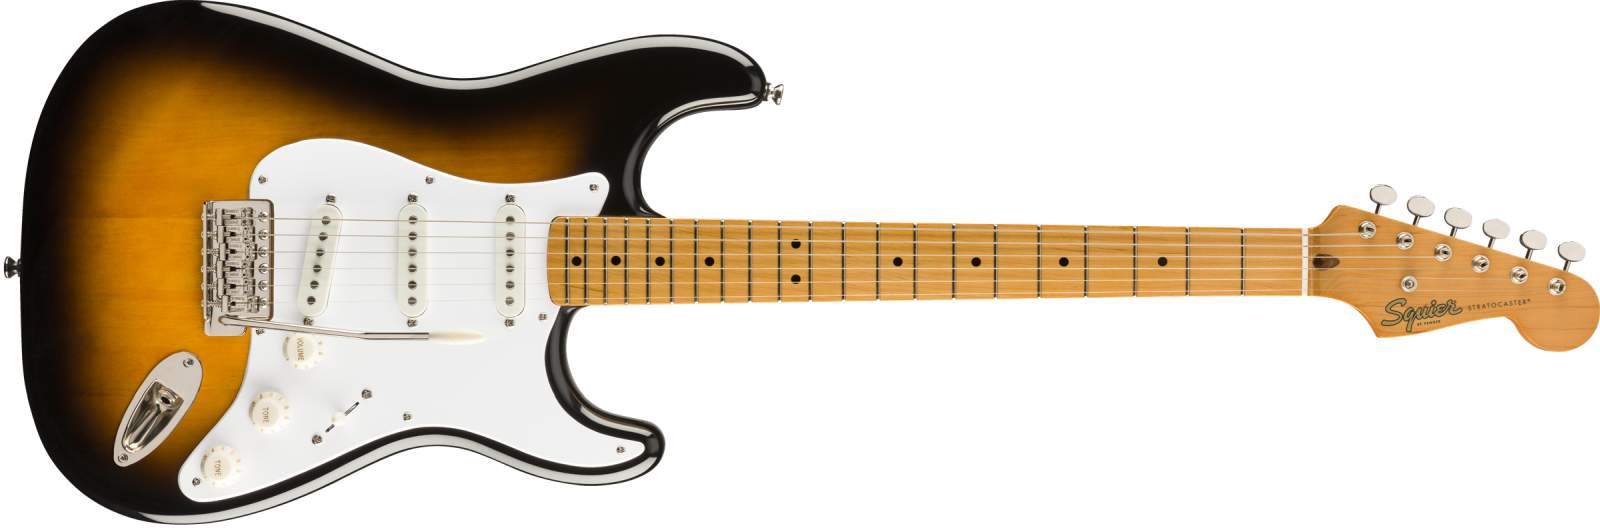 Squier Classic Vibe 50s Stratocaster MN 2TS